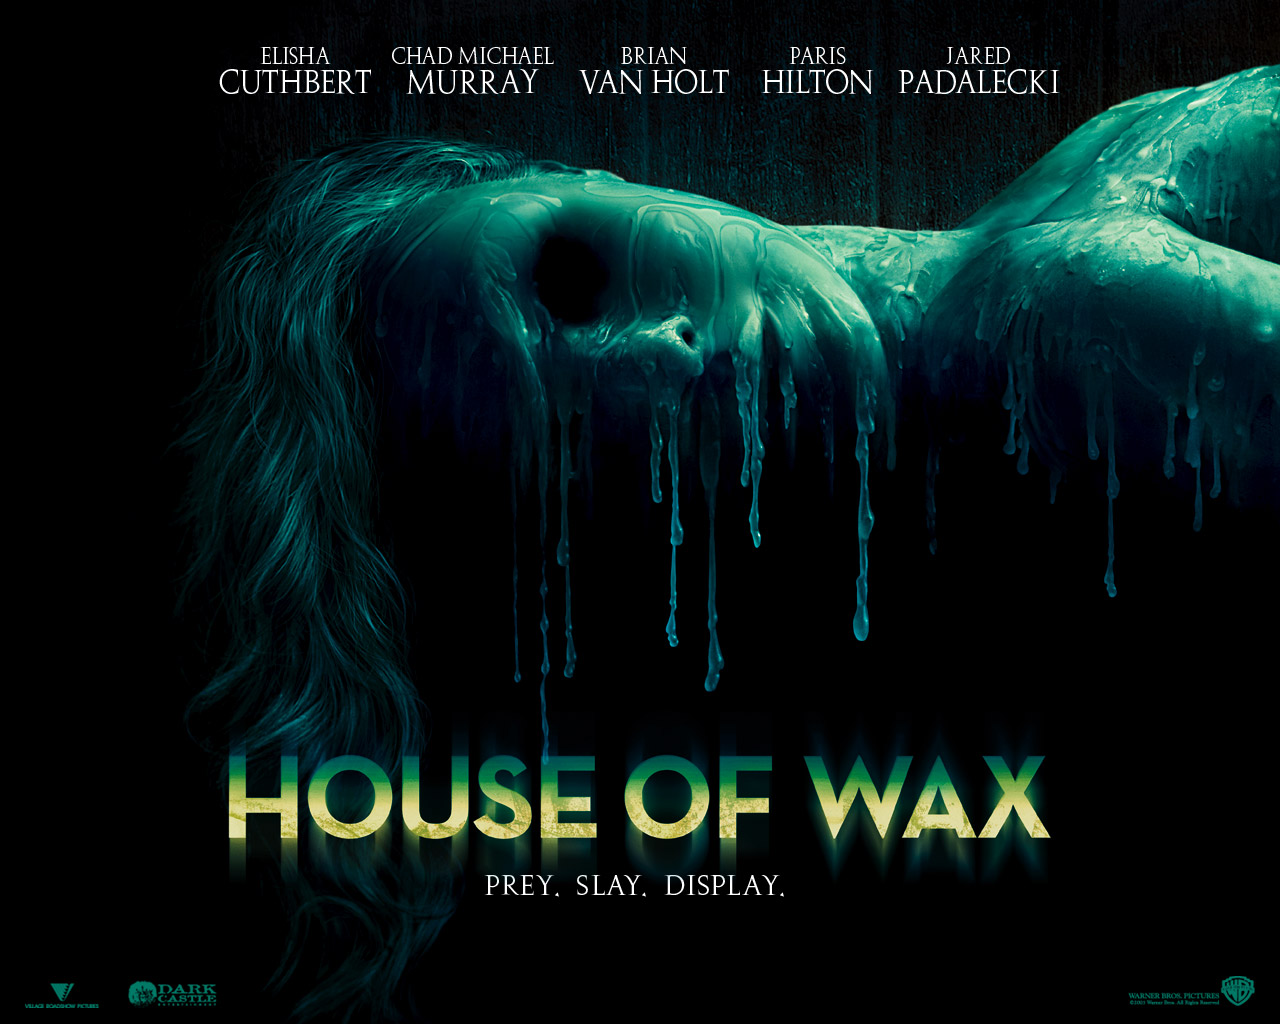 Download house of wax wallpaper house of wax 1